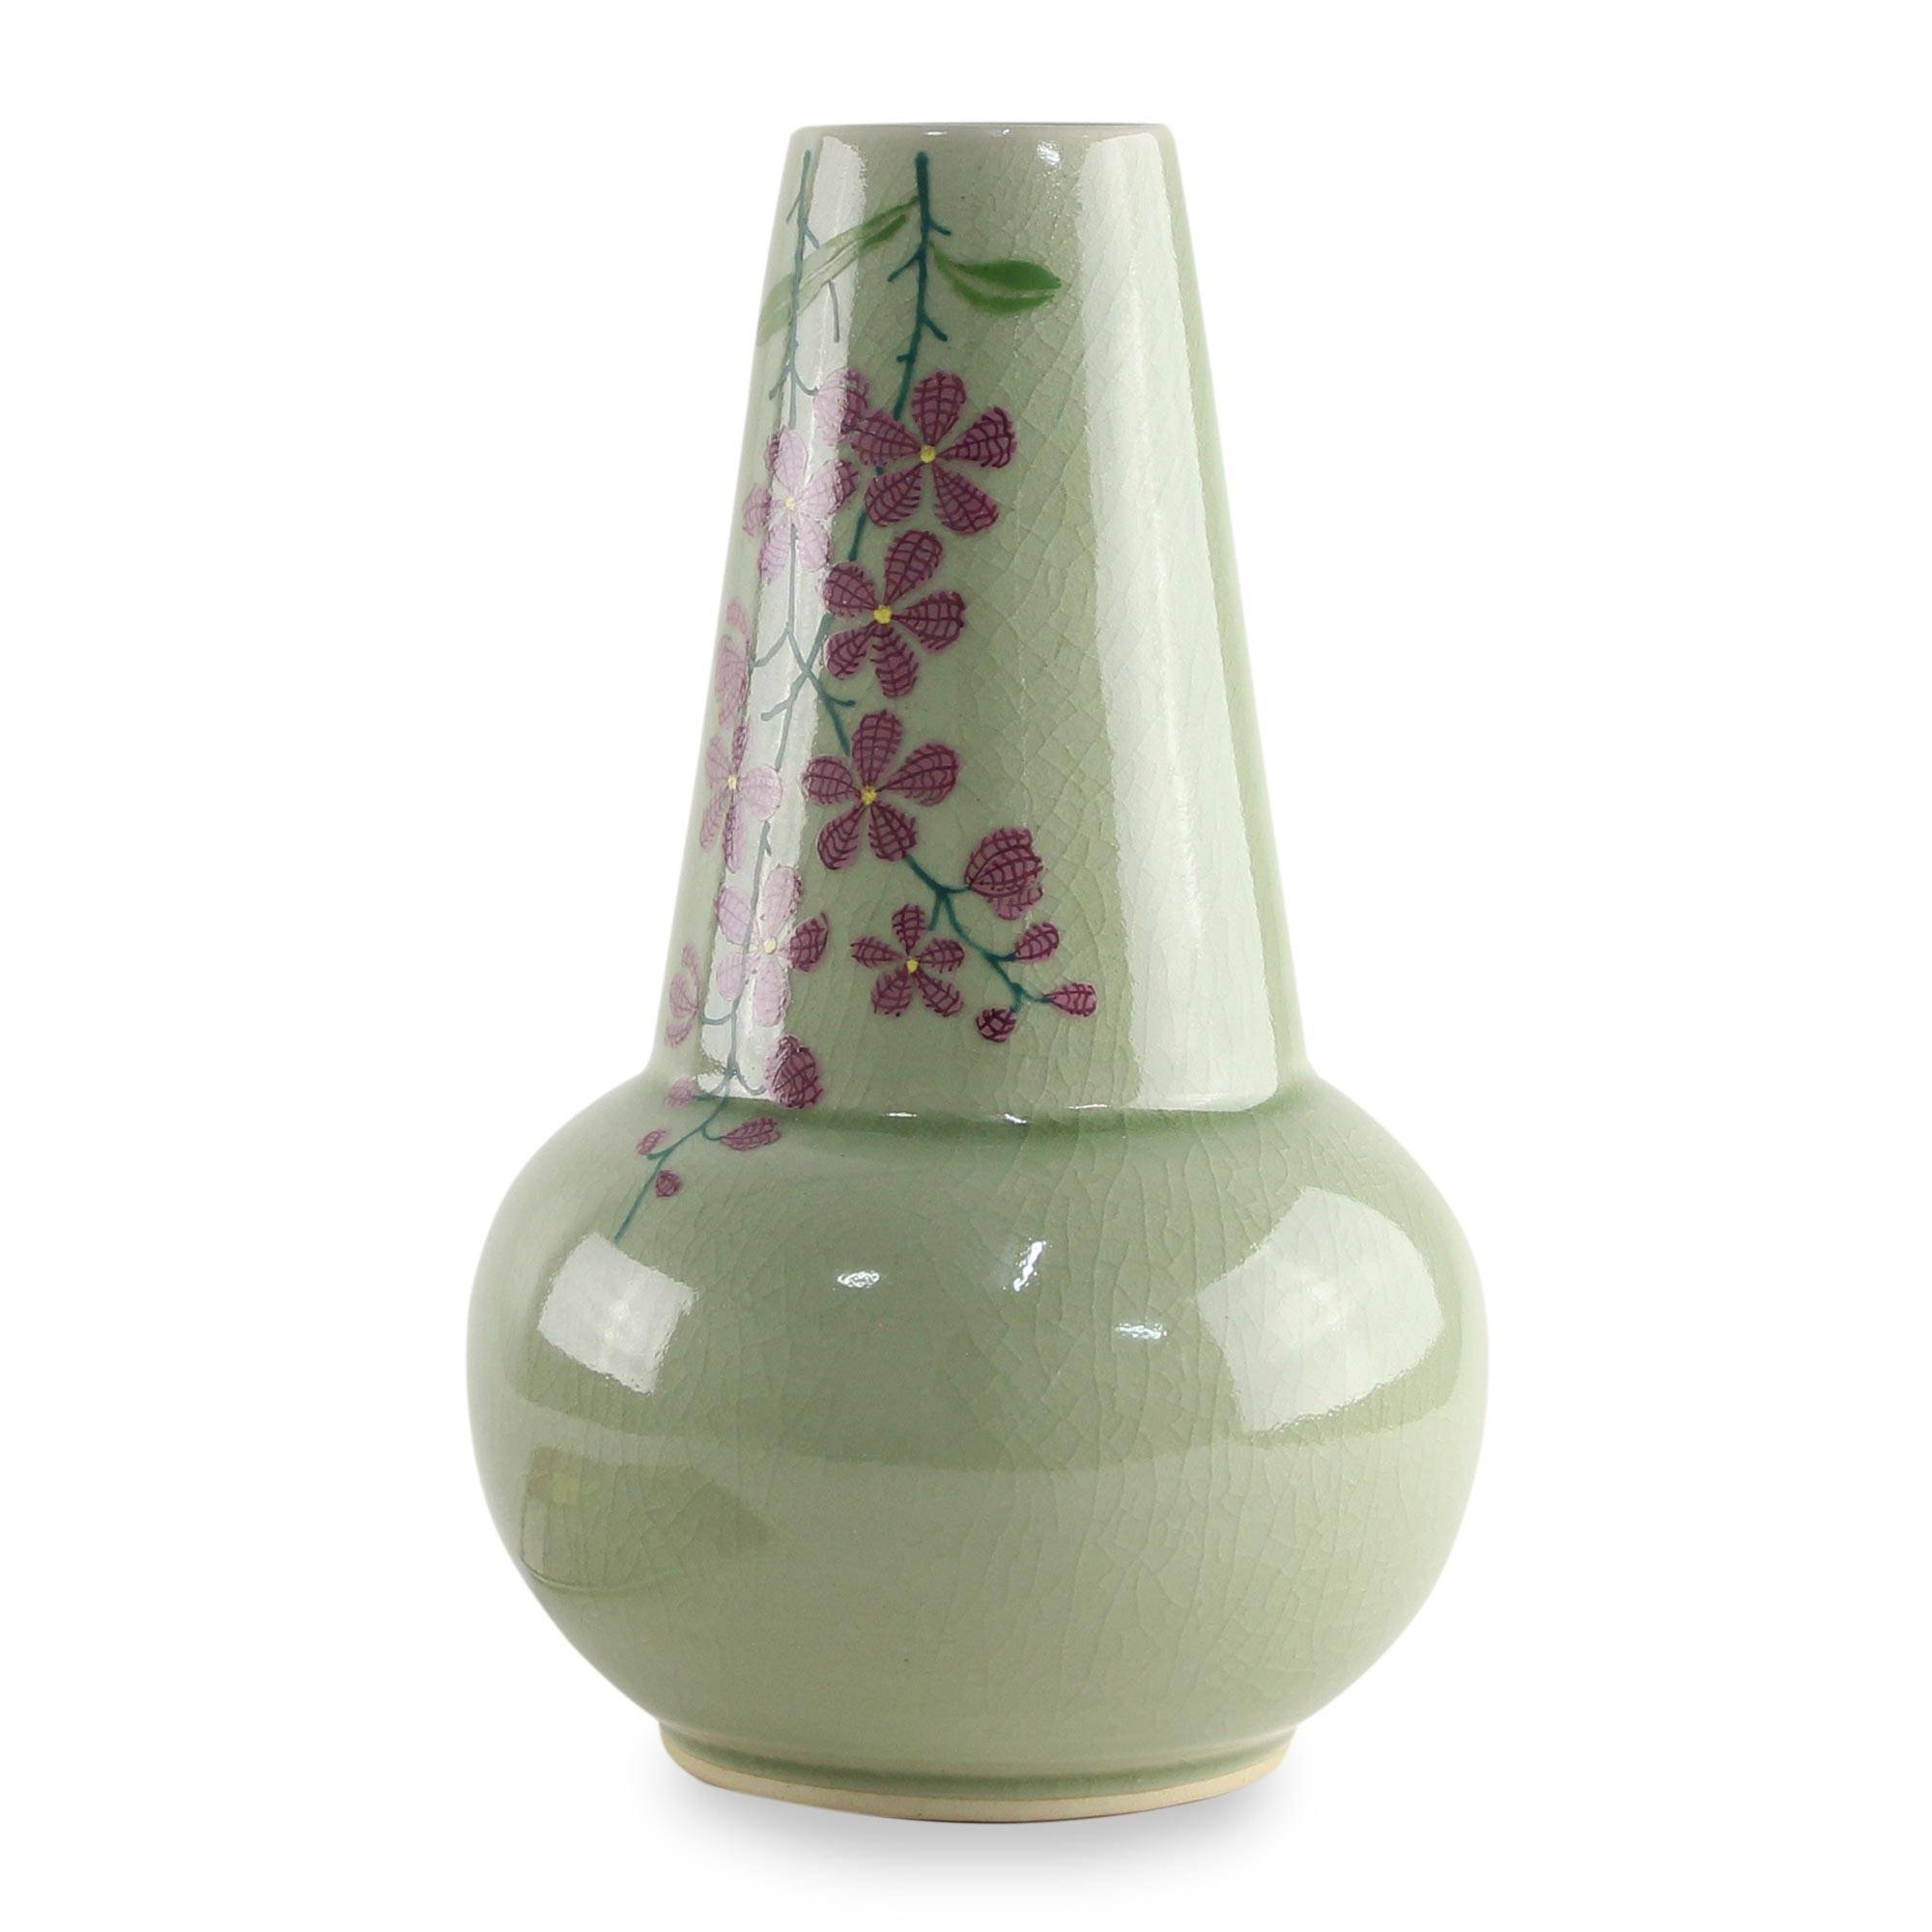 NOVICA Decorative Ceramic Celadon Vase, Green and Pink, 'Hanging Flowers' by NOVICA